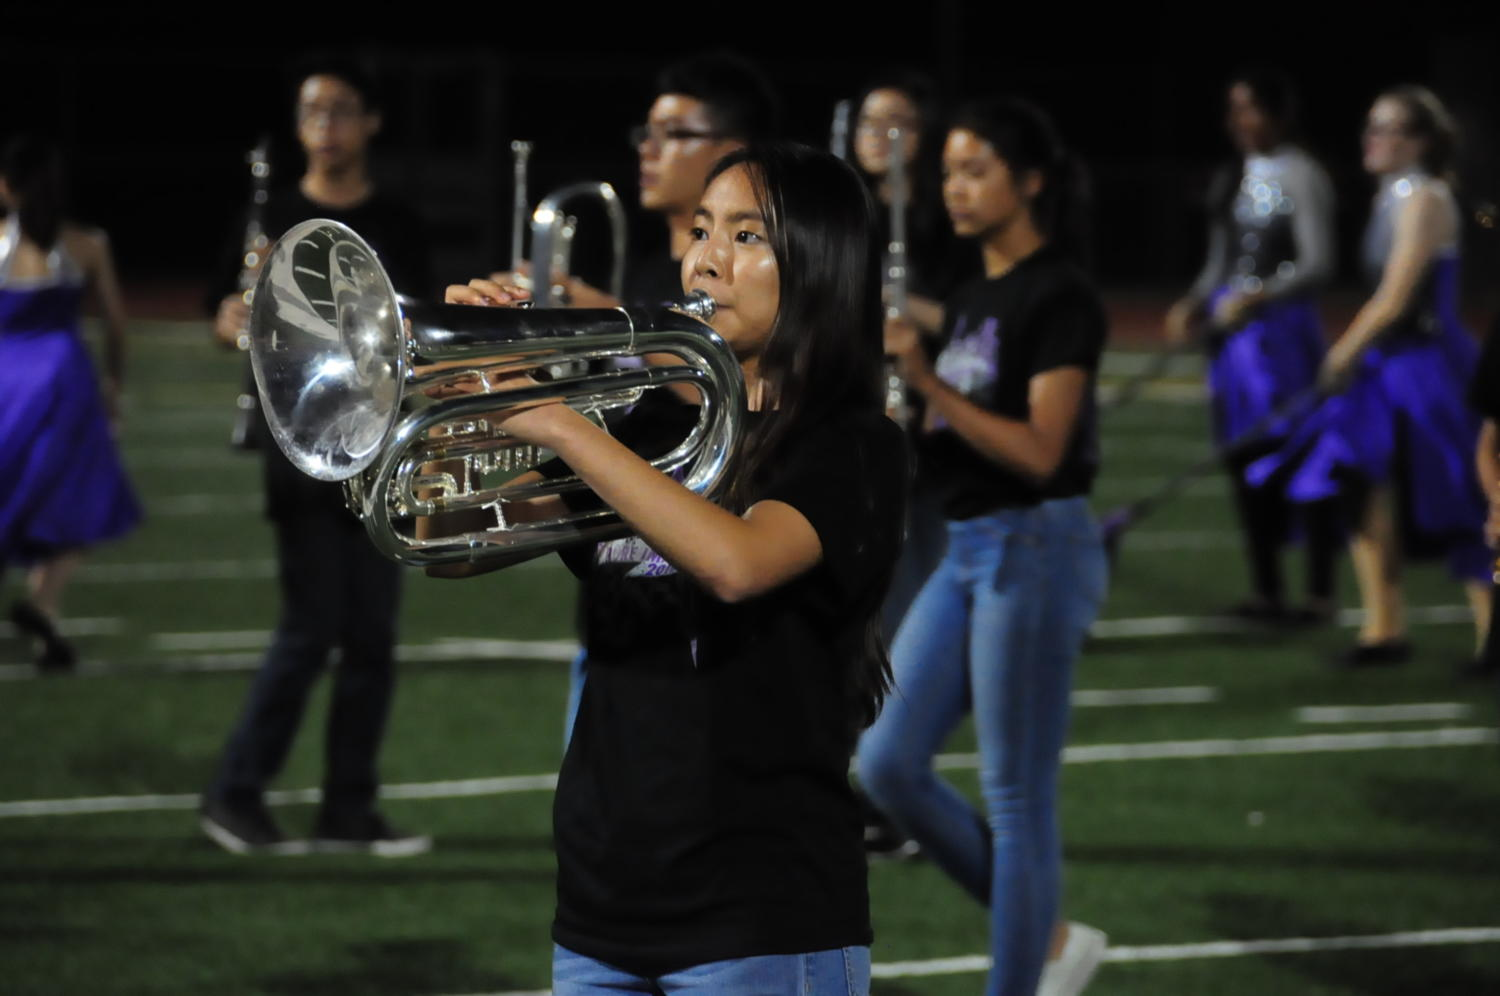 """Baritone section leader Stephanie Tang plays a solo during the marching band performance of """"Pure Imagination."""